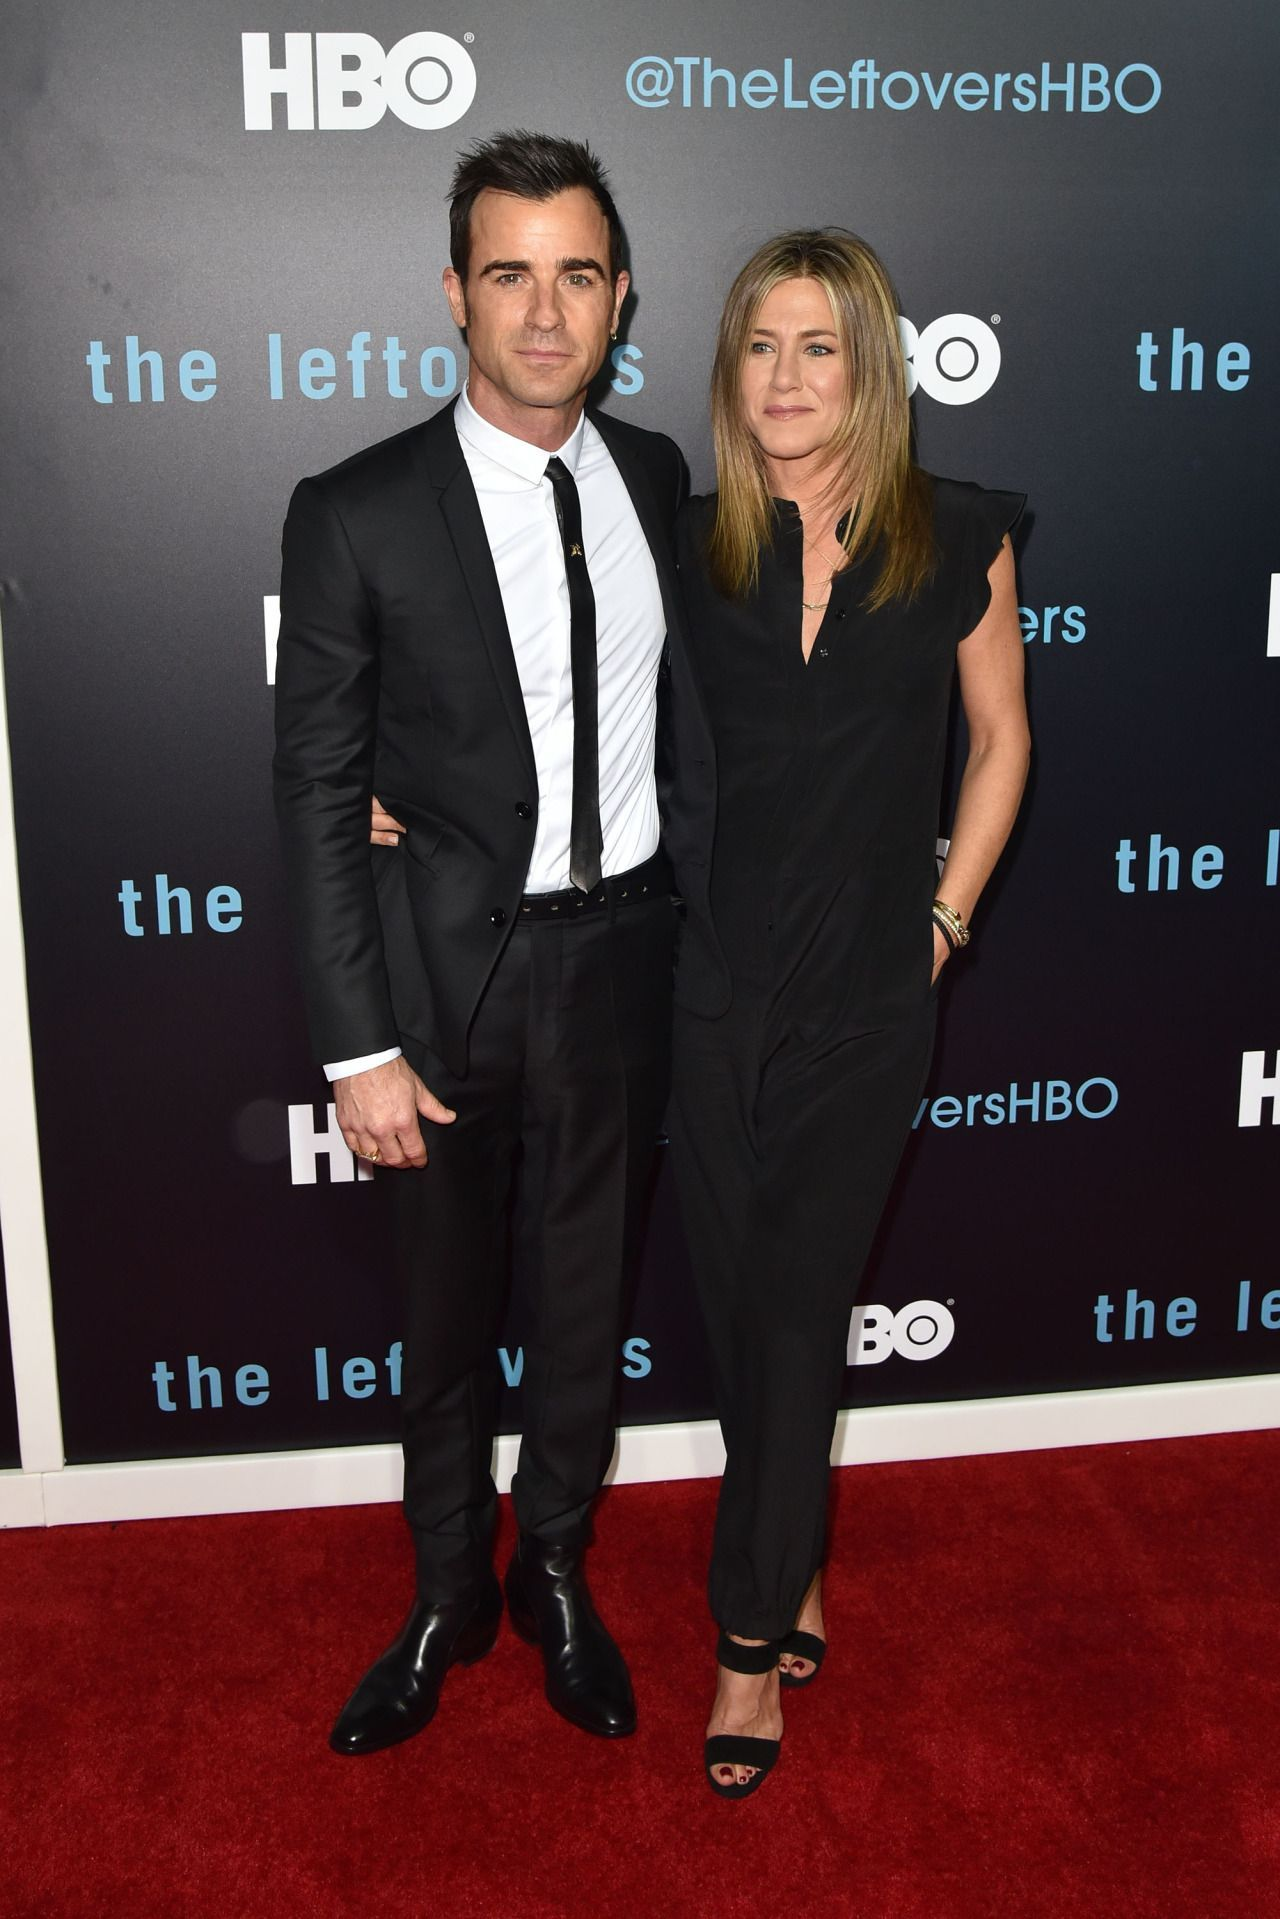 Jennifer Aniston & Justin Theroux Make Their Newlywed Red Carpet Debut  with <3 from JDzigner www.jdzigner.com